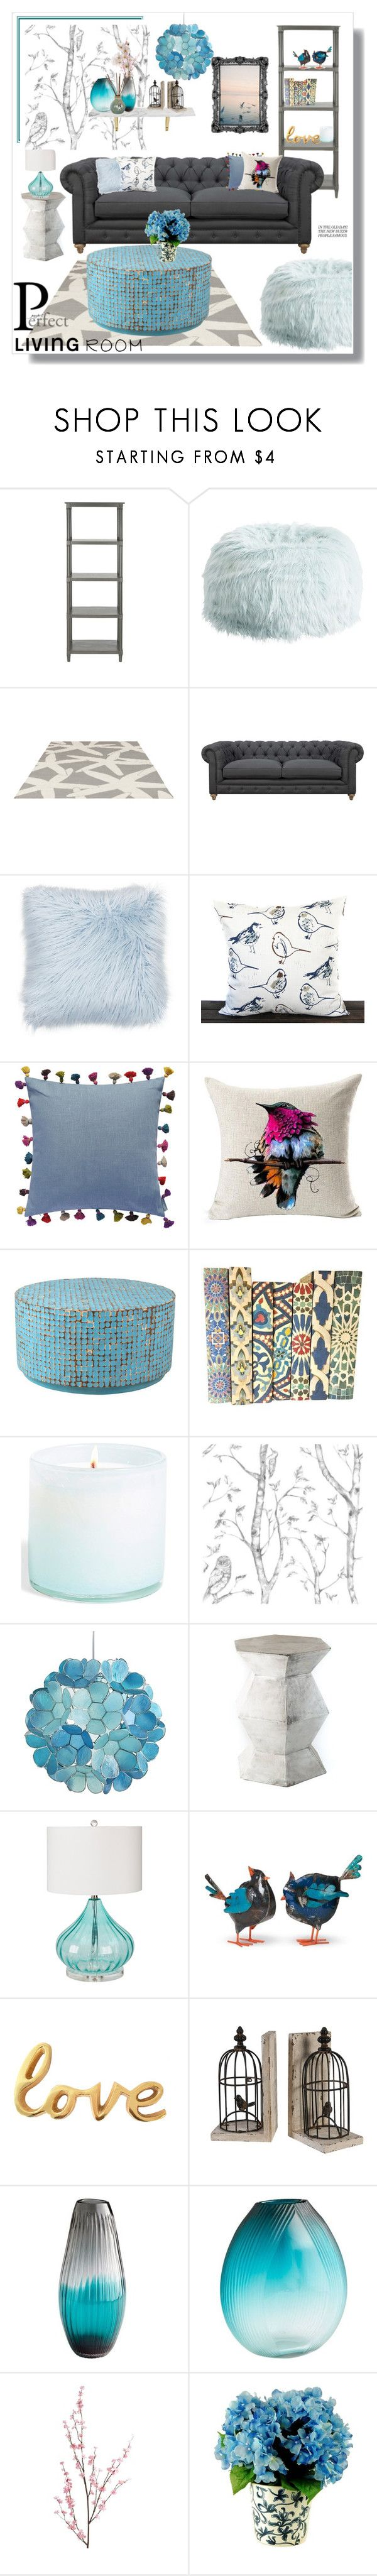 """perfect livingroom"" by artistic-biscuit ❤ liked on Polyvore featuring interior, interiors, interior design, home, home decor, interior decorating, Safavieh, PBteen, Somerset Bay and Bluebellgray"